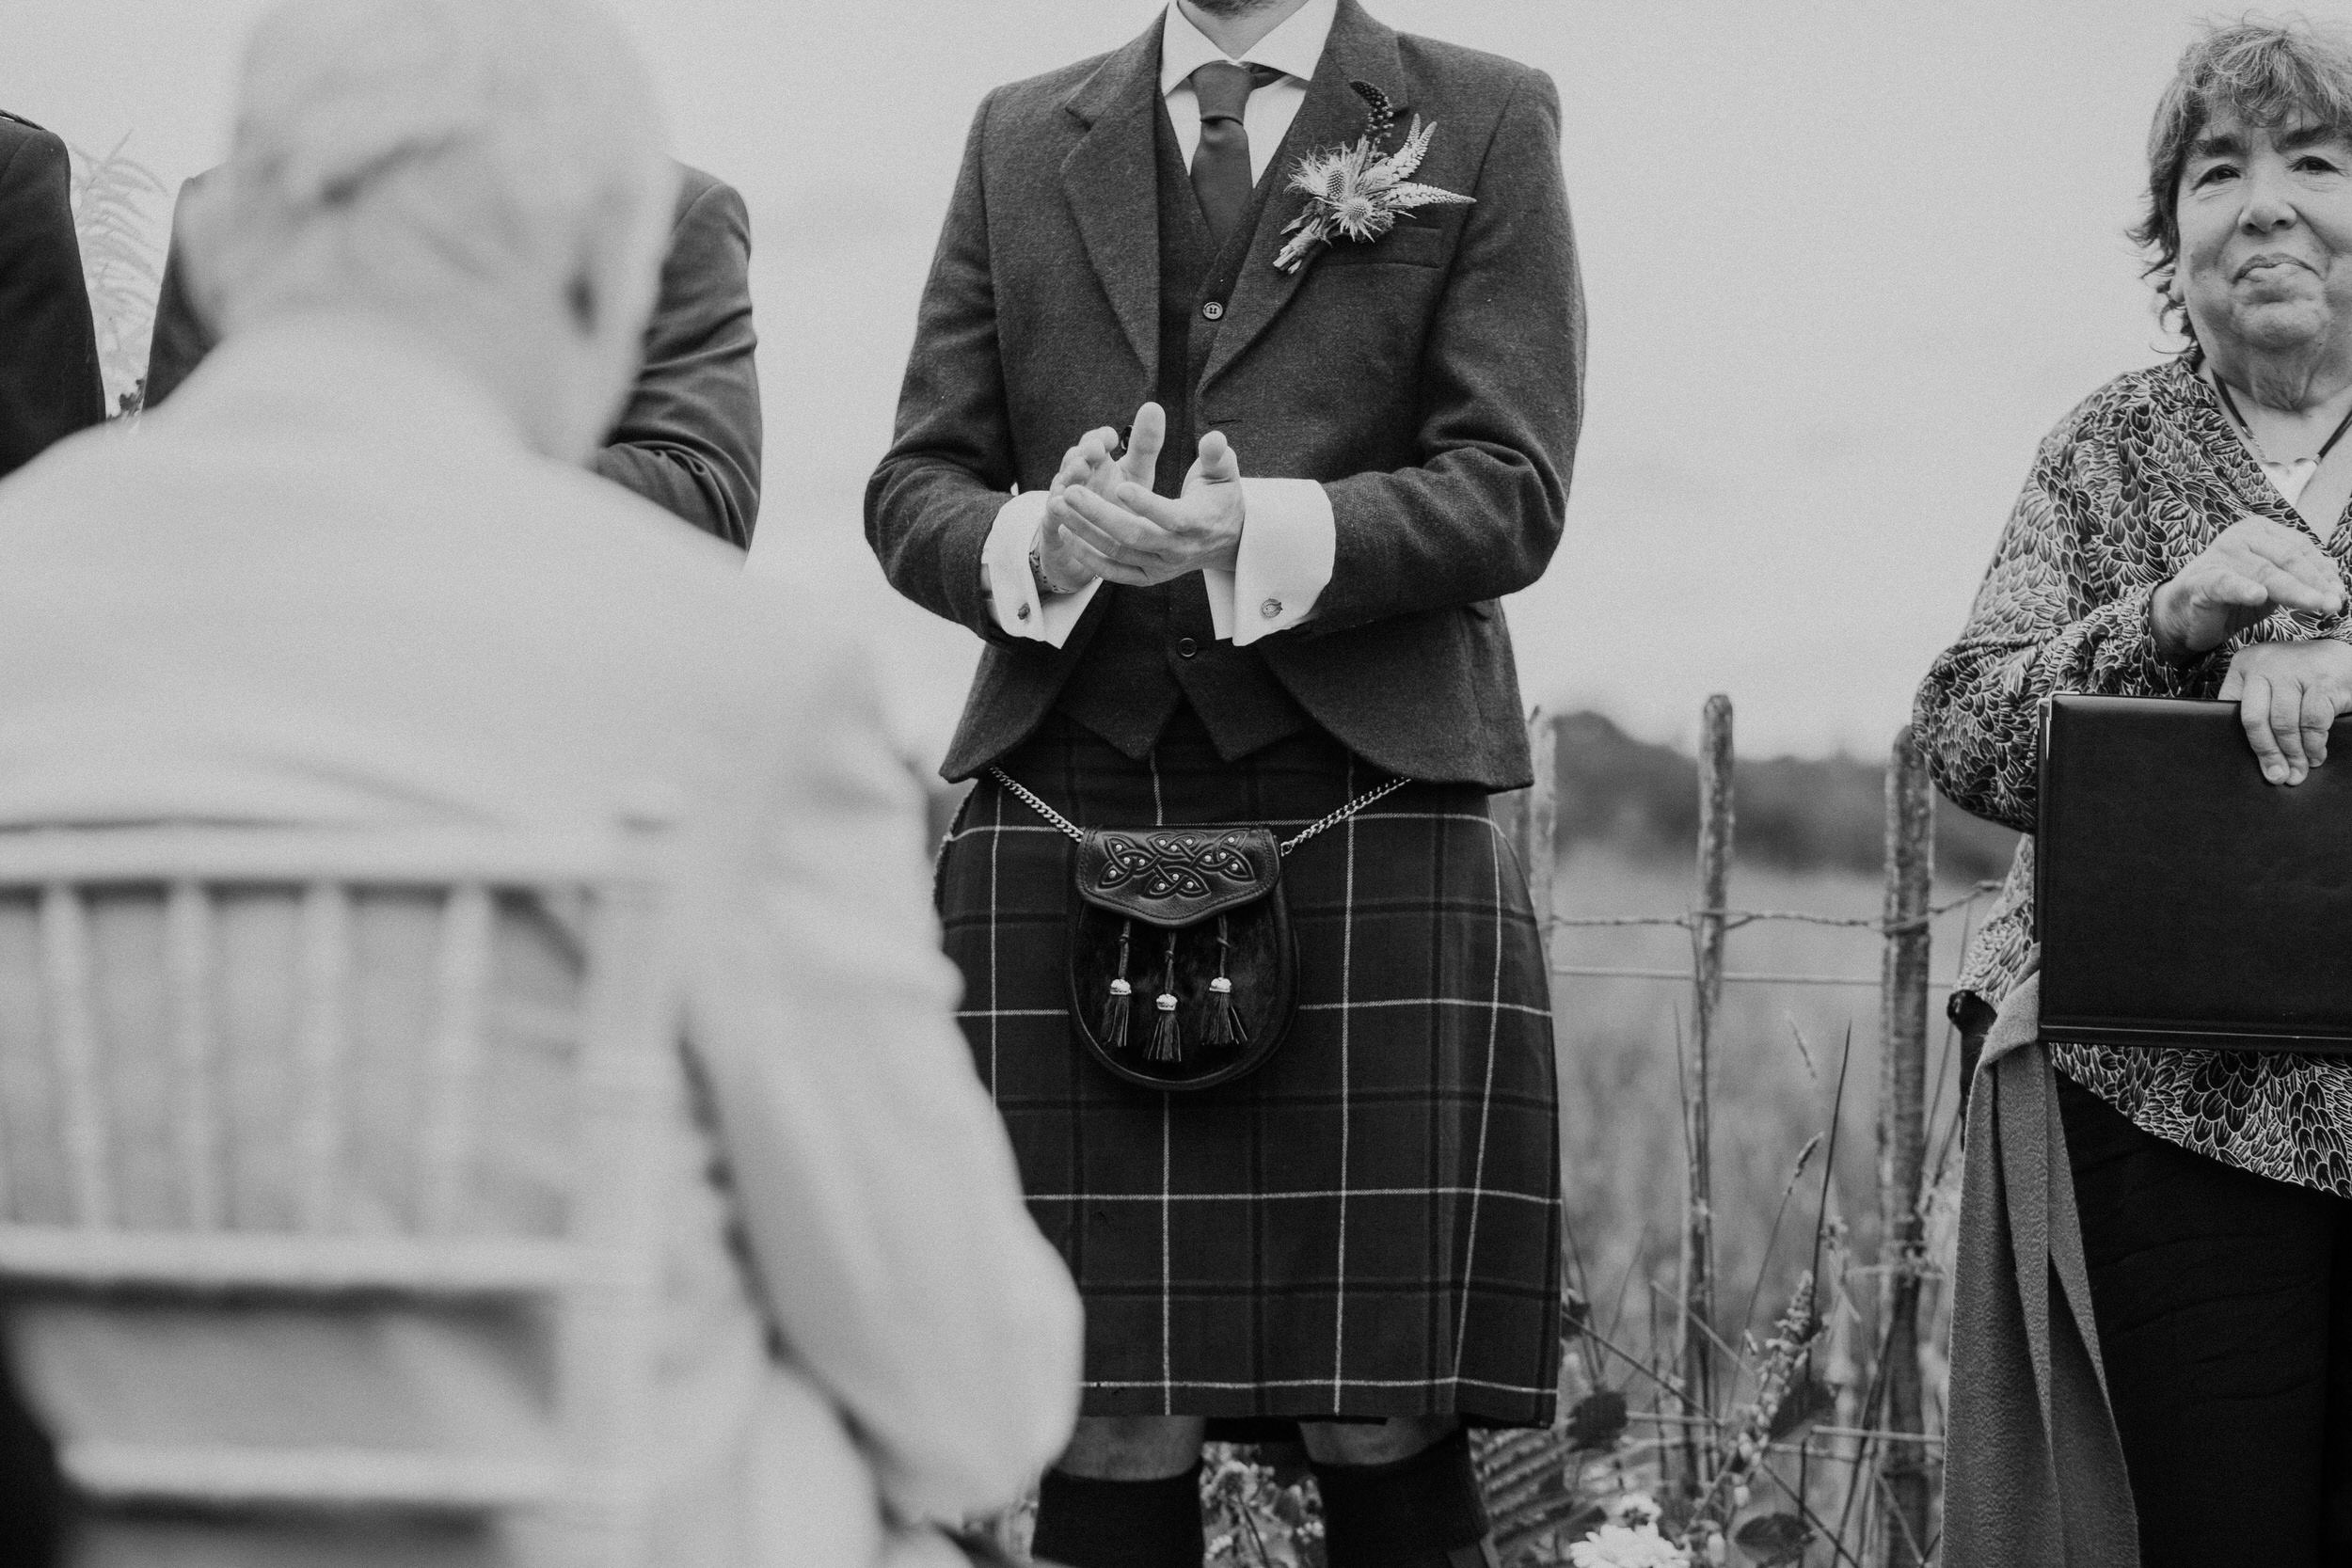 Alternative Quirky Wedding Photographer Scotland Borders Edinburgh 033.jpg